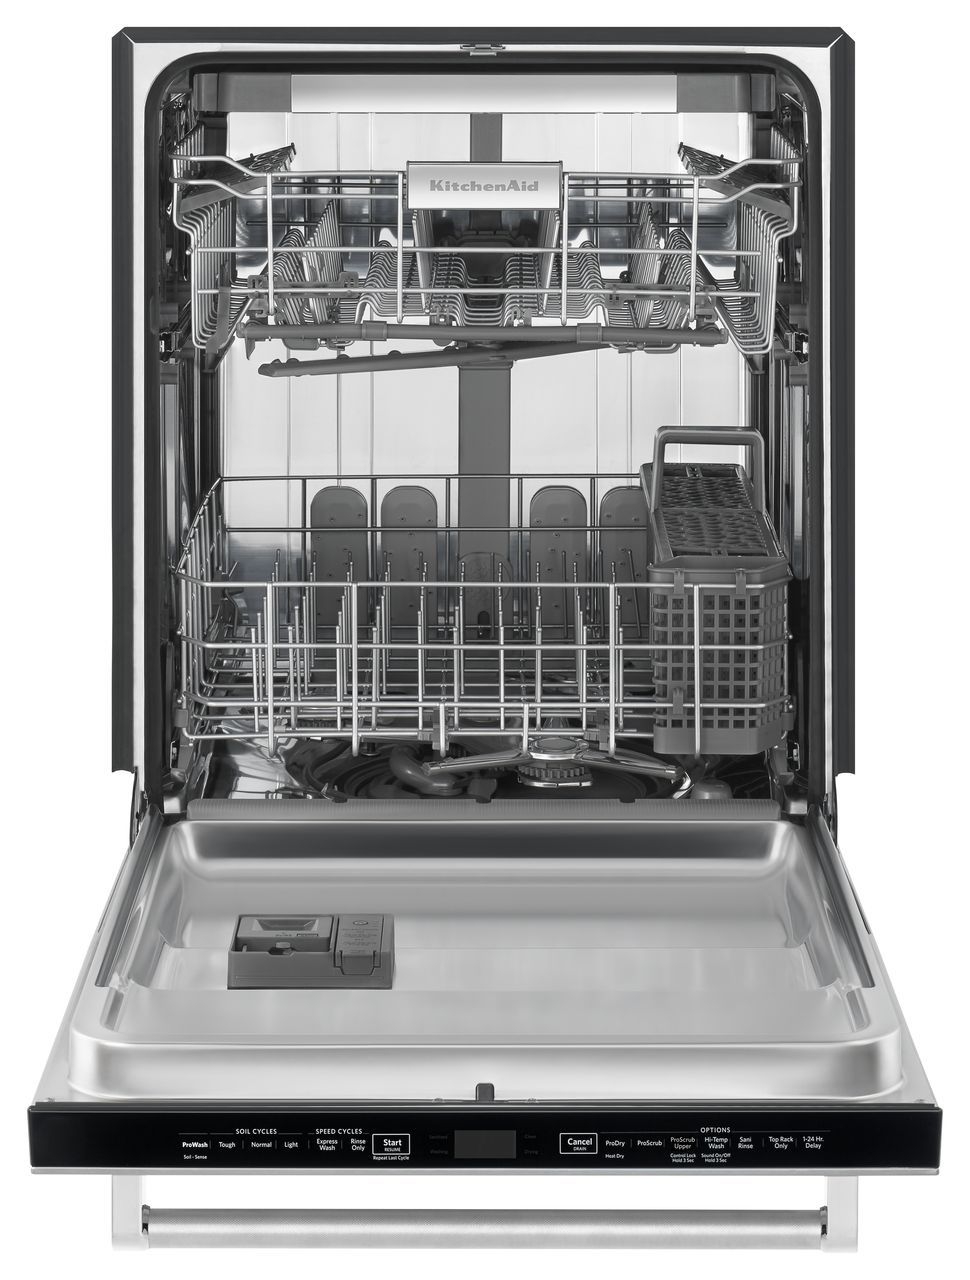 How To Use Kitchen Aid Dishwasher